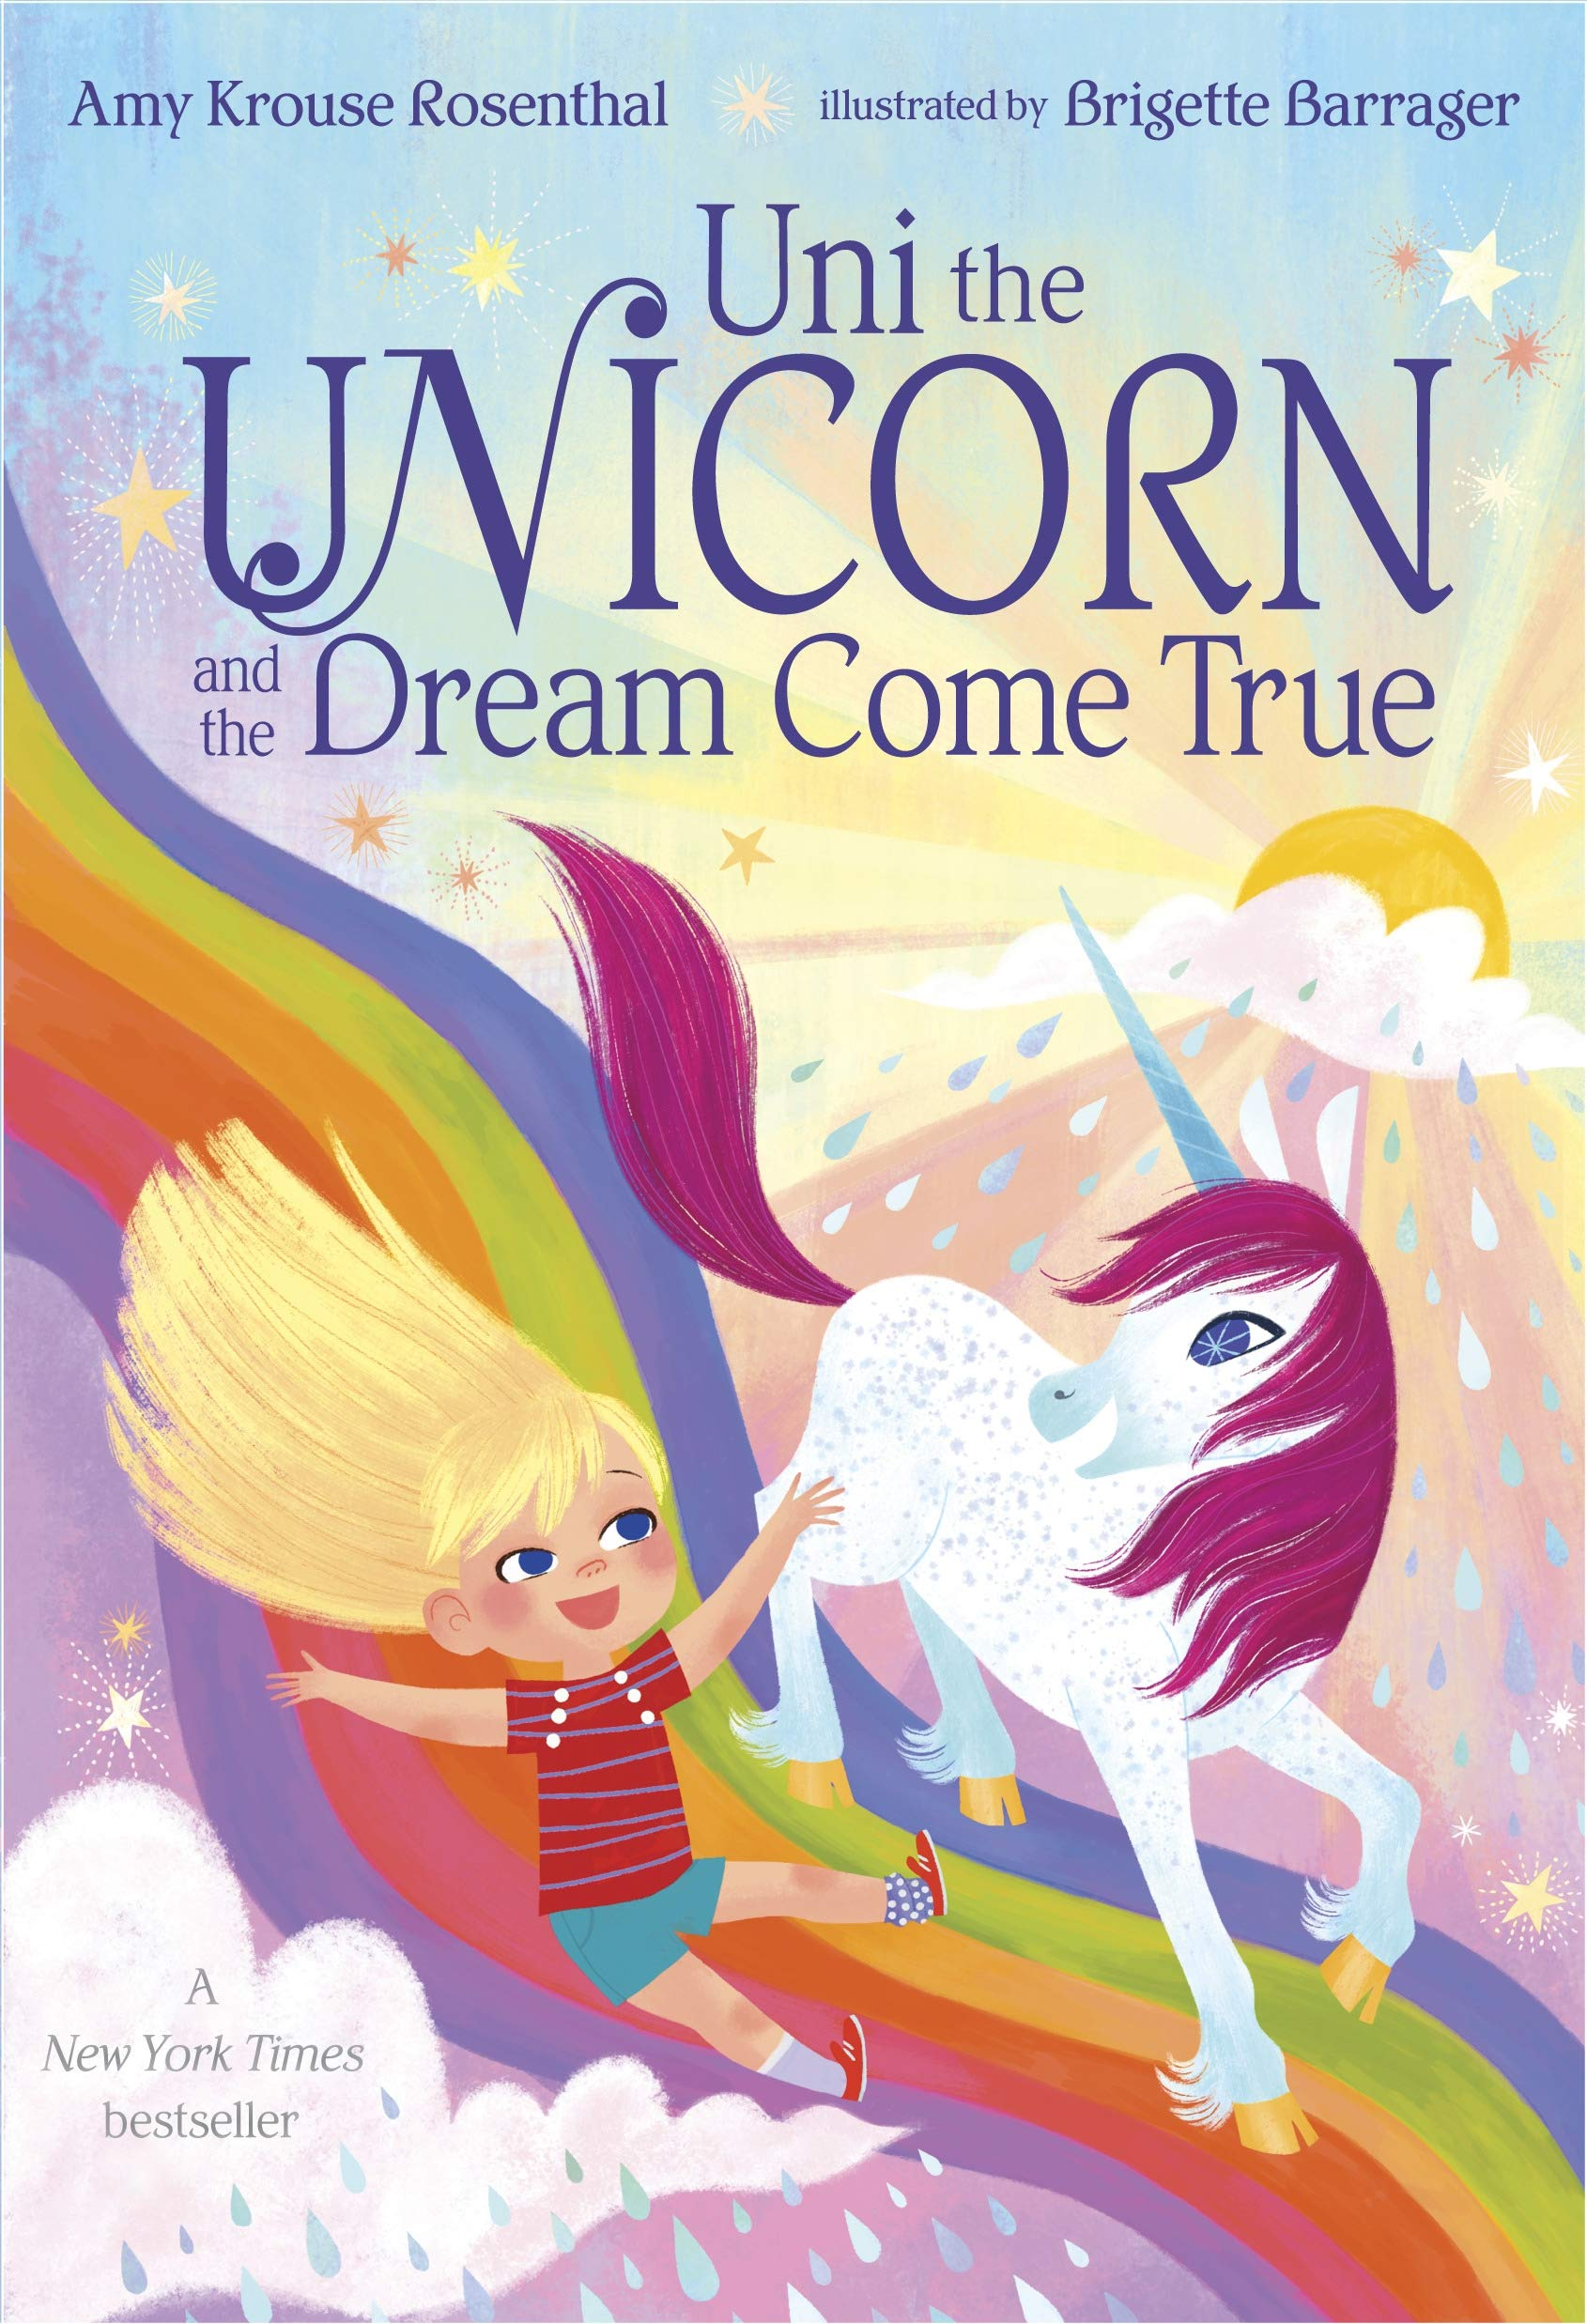 Random House Books for Young Readers (June 4, 2019)